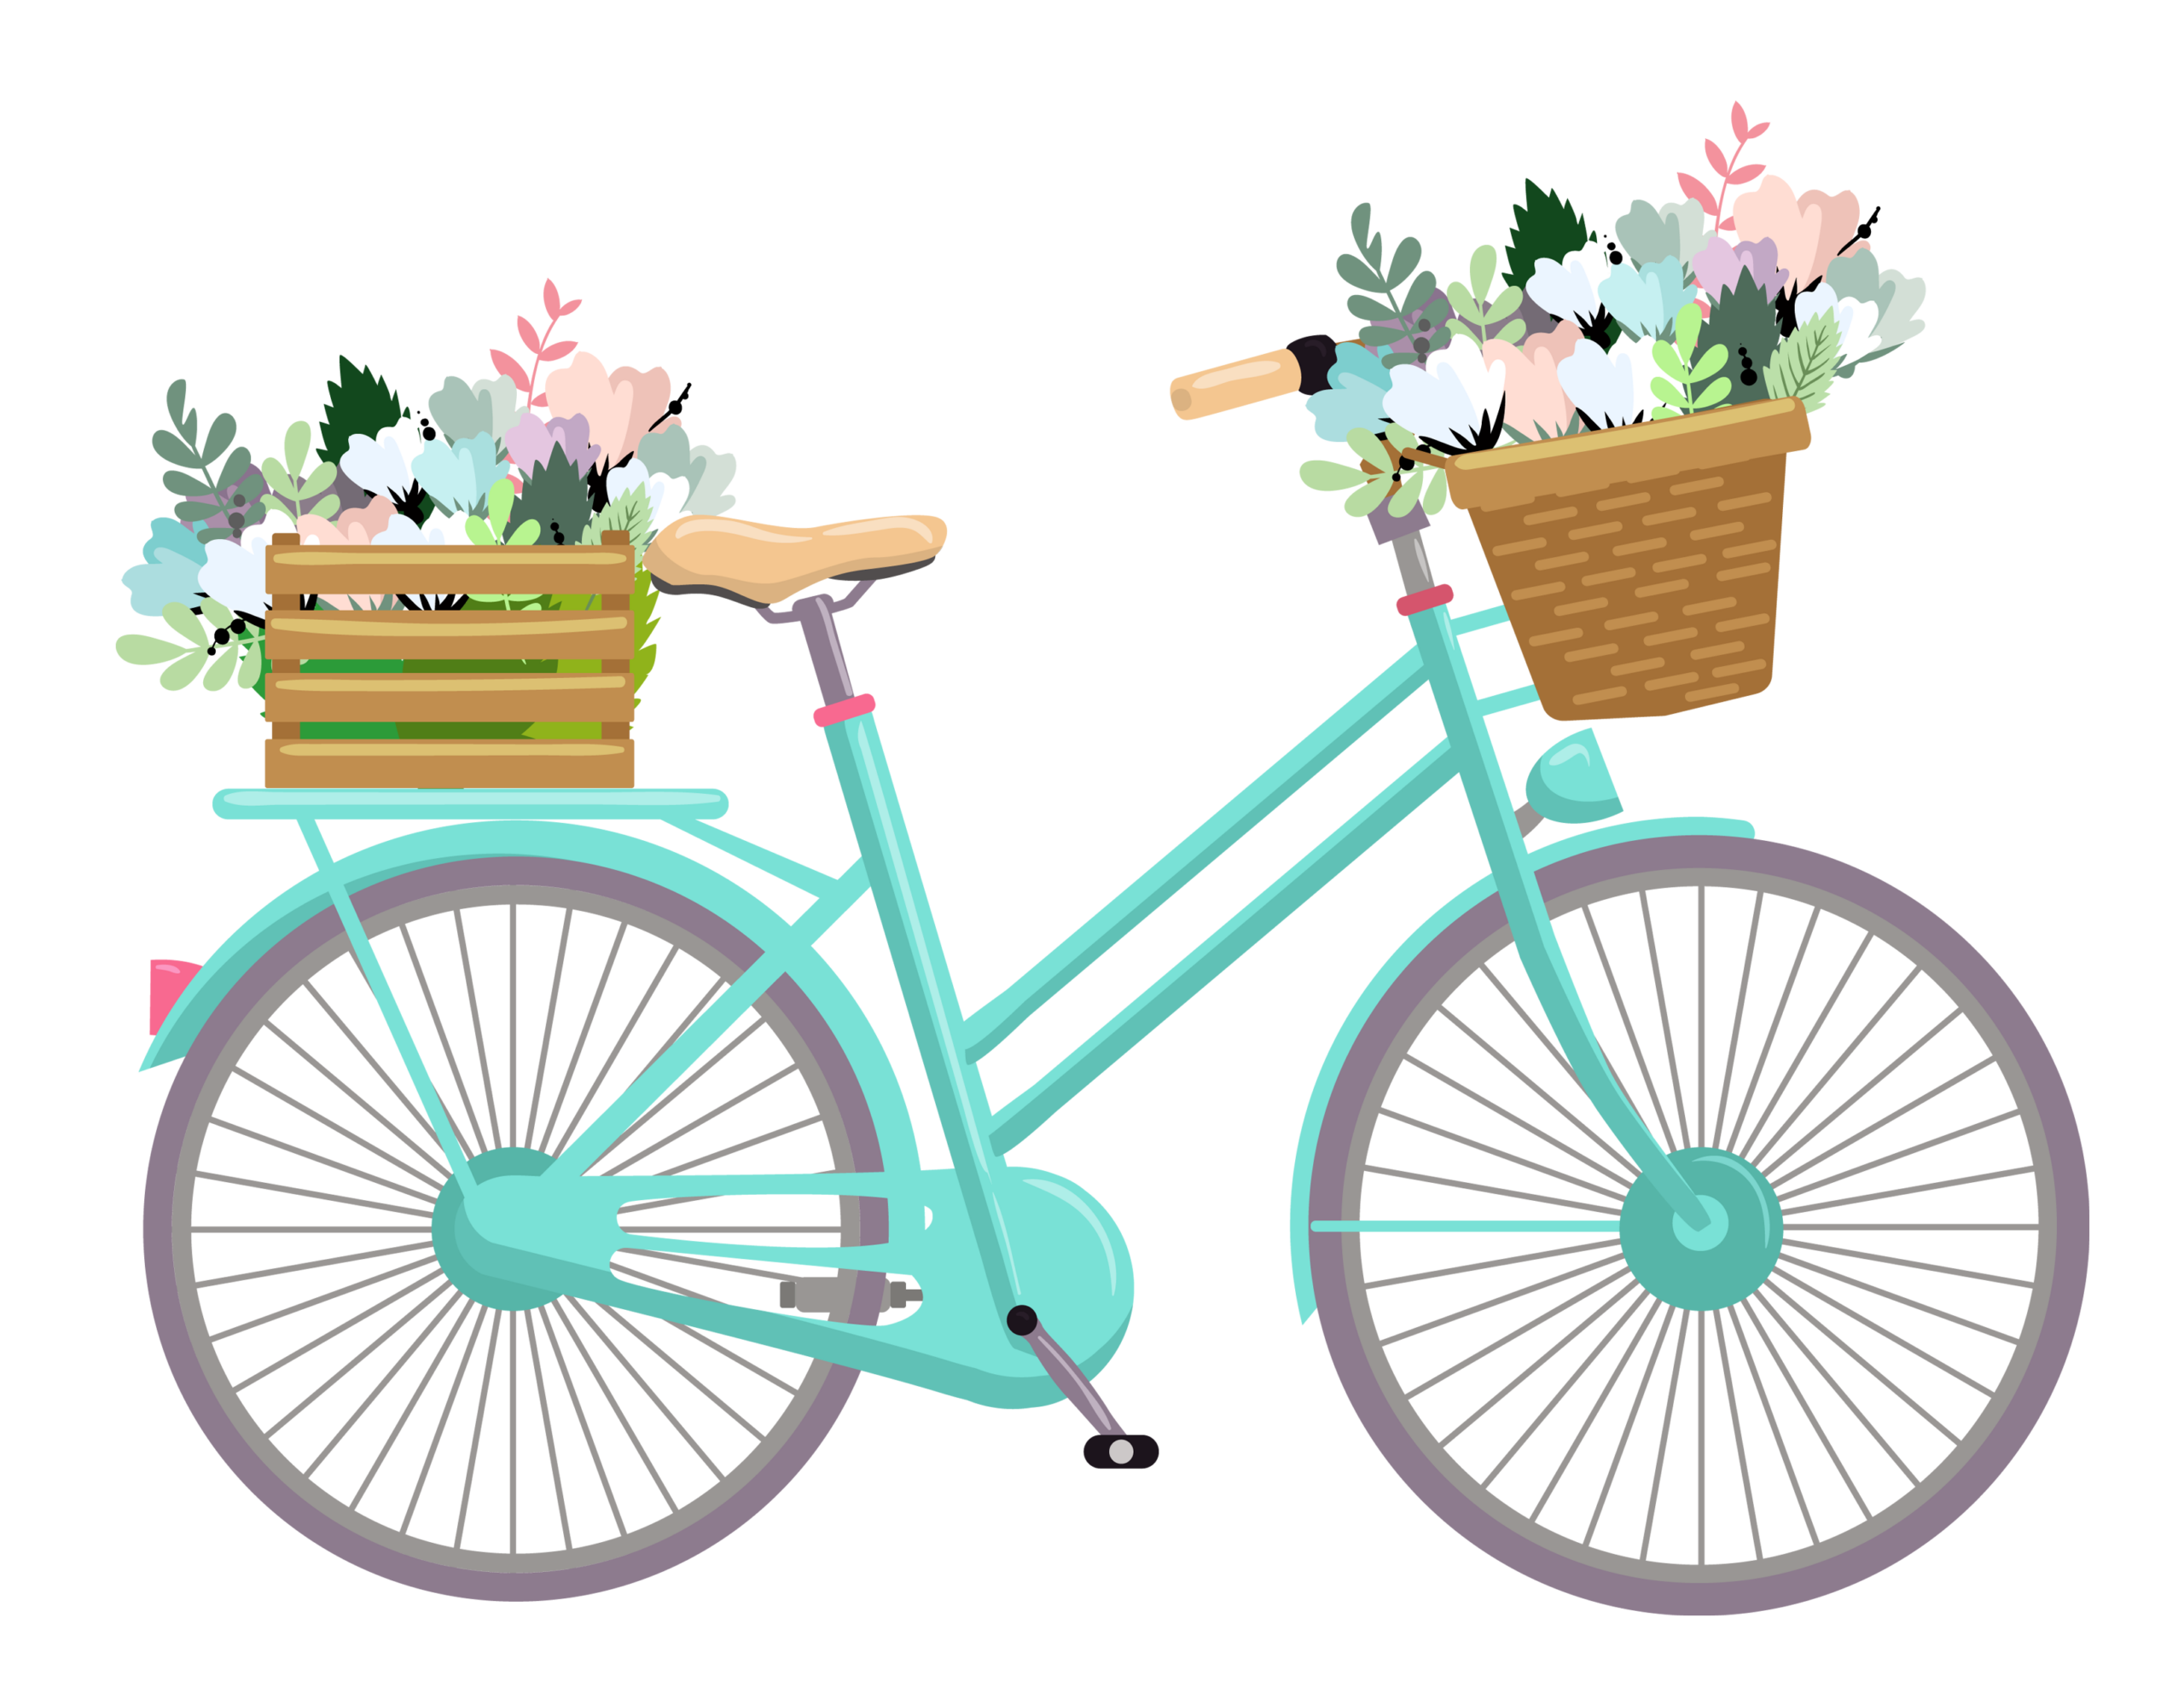 bike clipart - photo #35